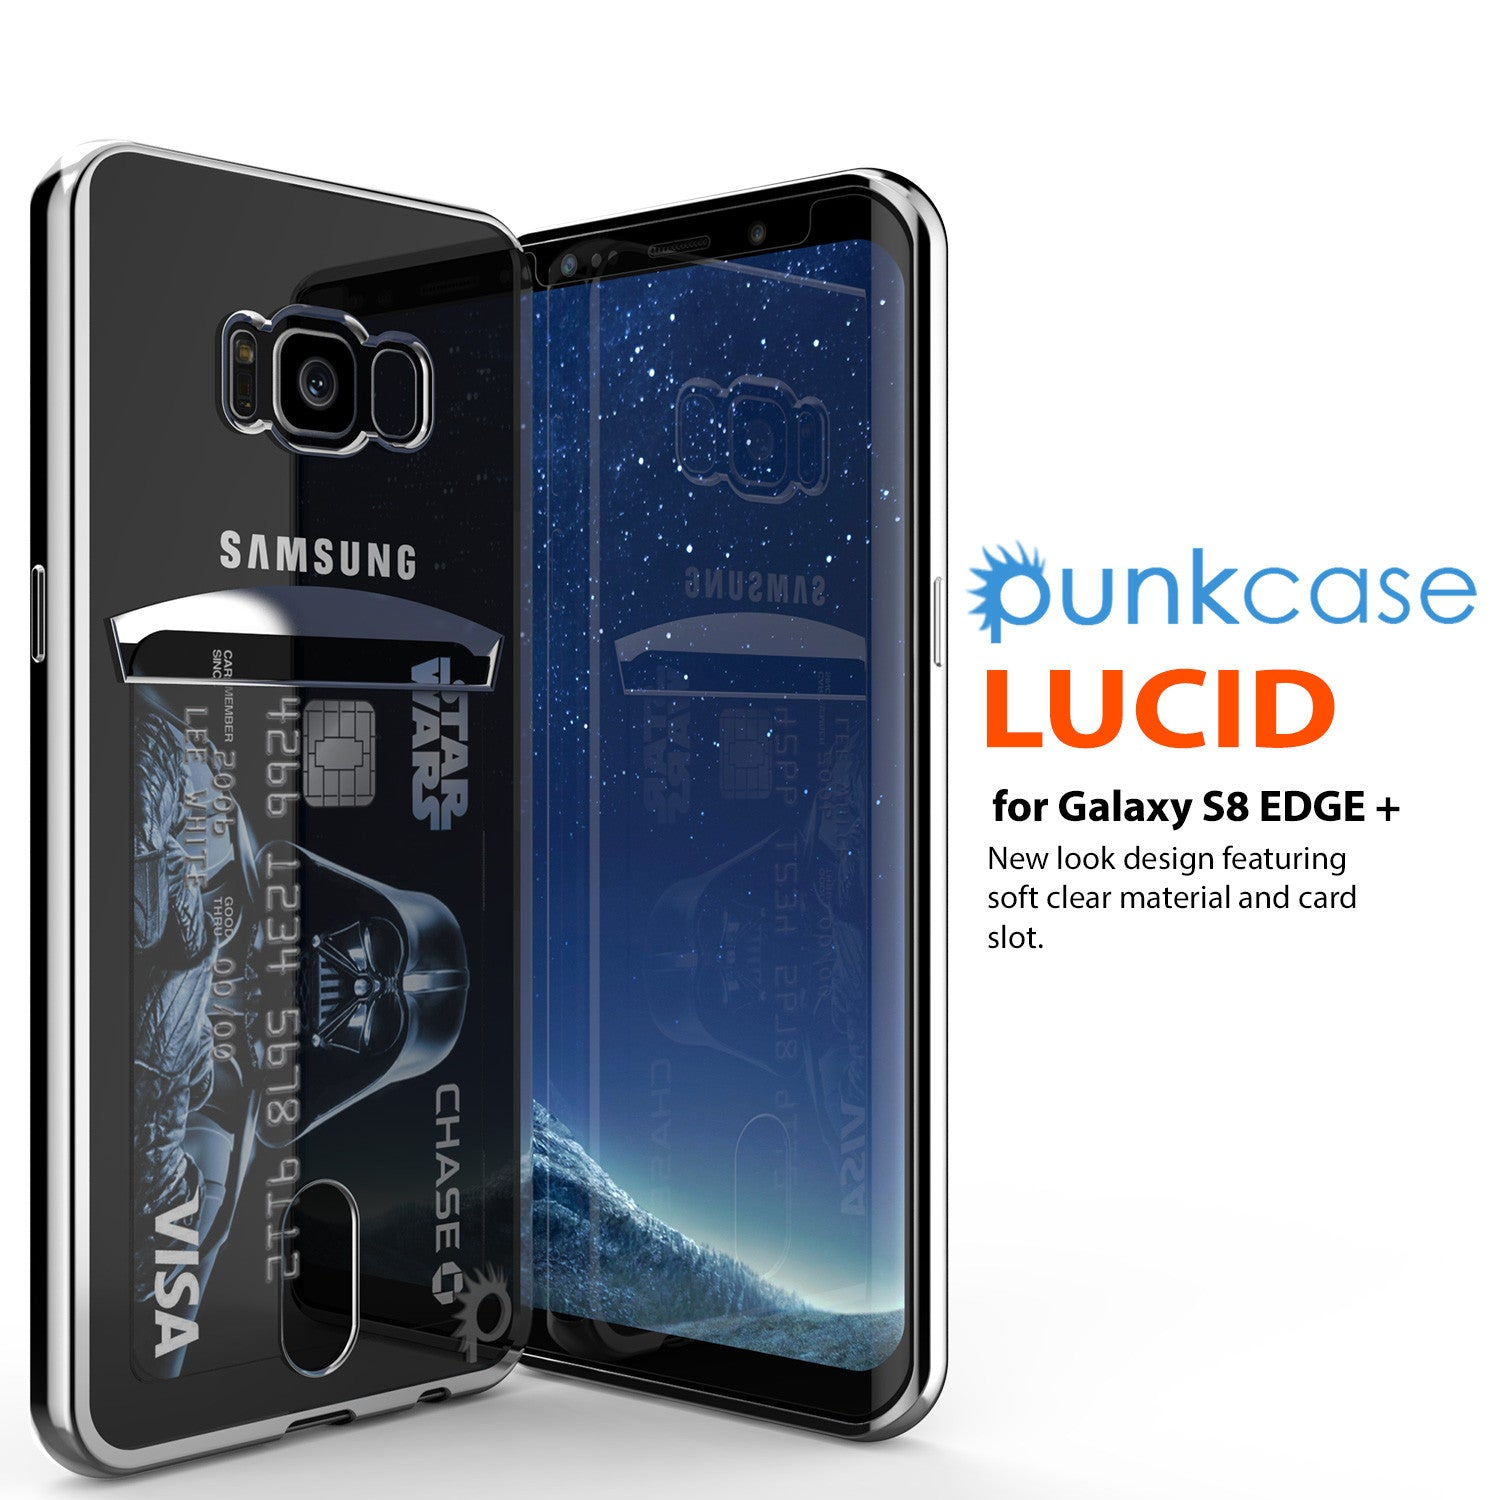 Galaxy S8 Plus Case, PUNKCASE® LUCID Silver Series | Card Slot | SHIELD Screen Protector | Ultra fit